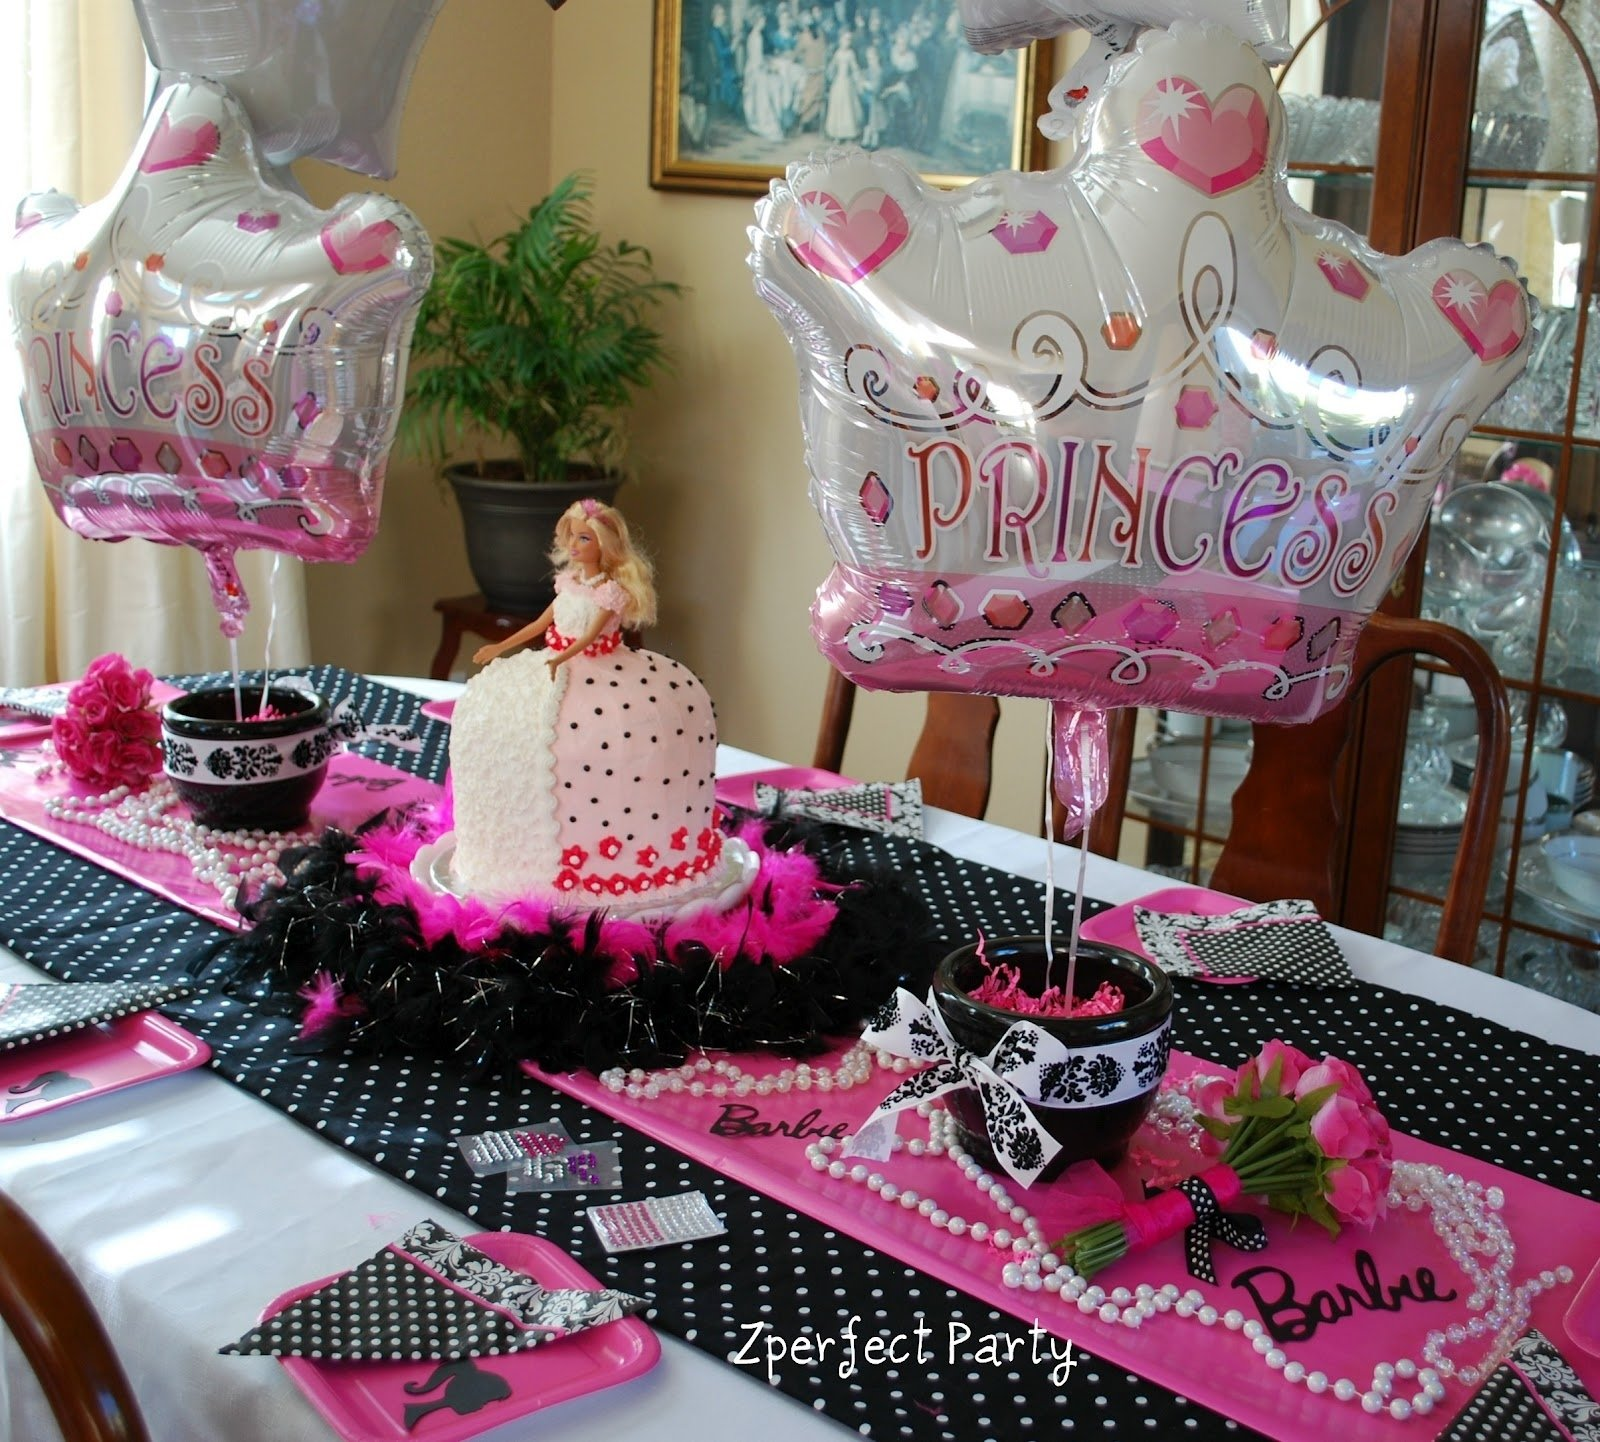 10 Perfect Princess Party Ideas For 5 Year Old princess party game ideas for 5 year old wedding 2021